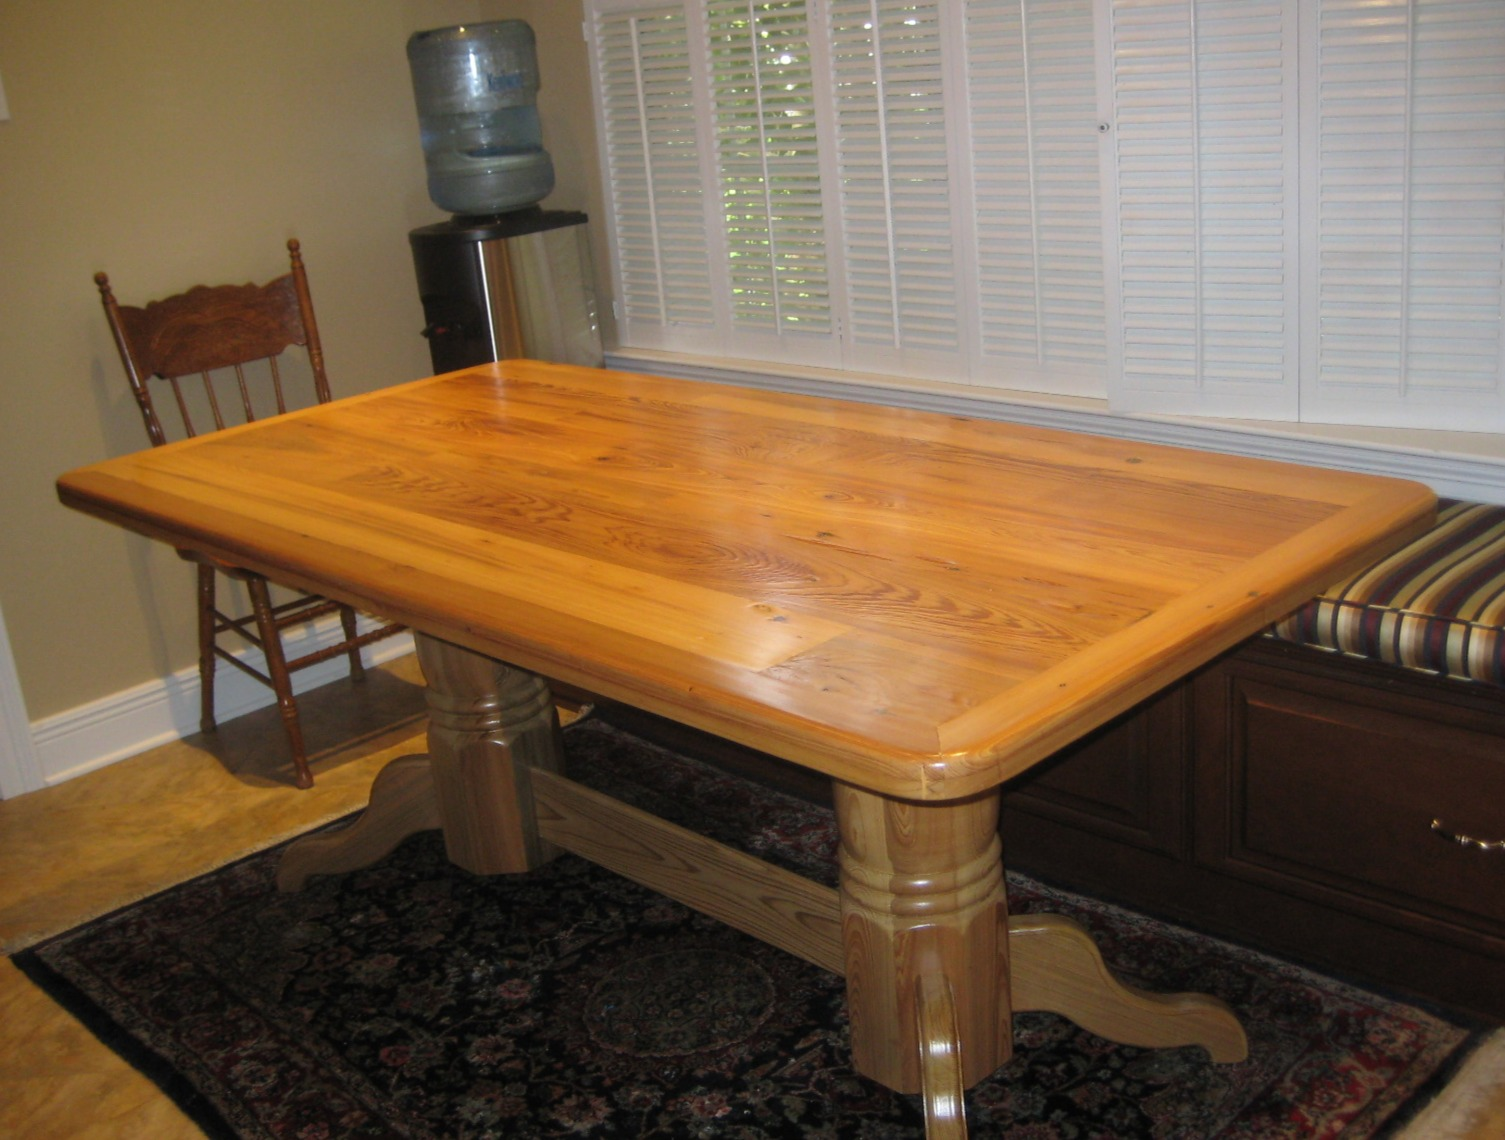 The table top was made from old cypress lumber that came from a torn down barn that was owned by the client's father. The base was built from sinker cypress since there wasn't enough lumber for the entire table.